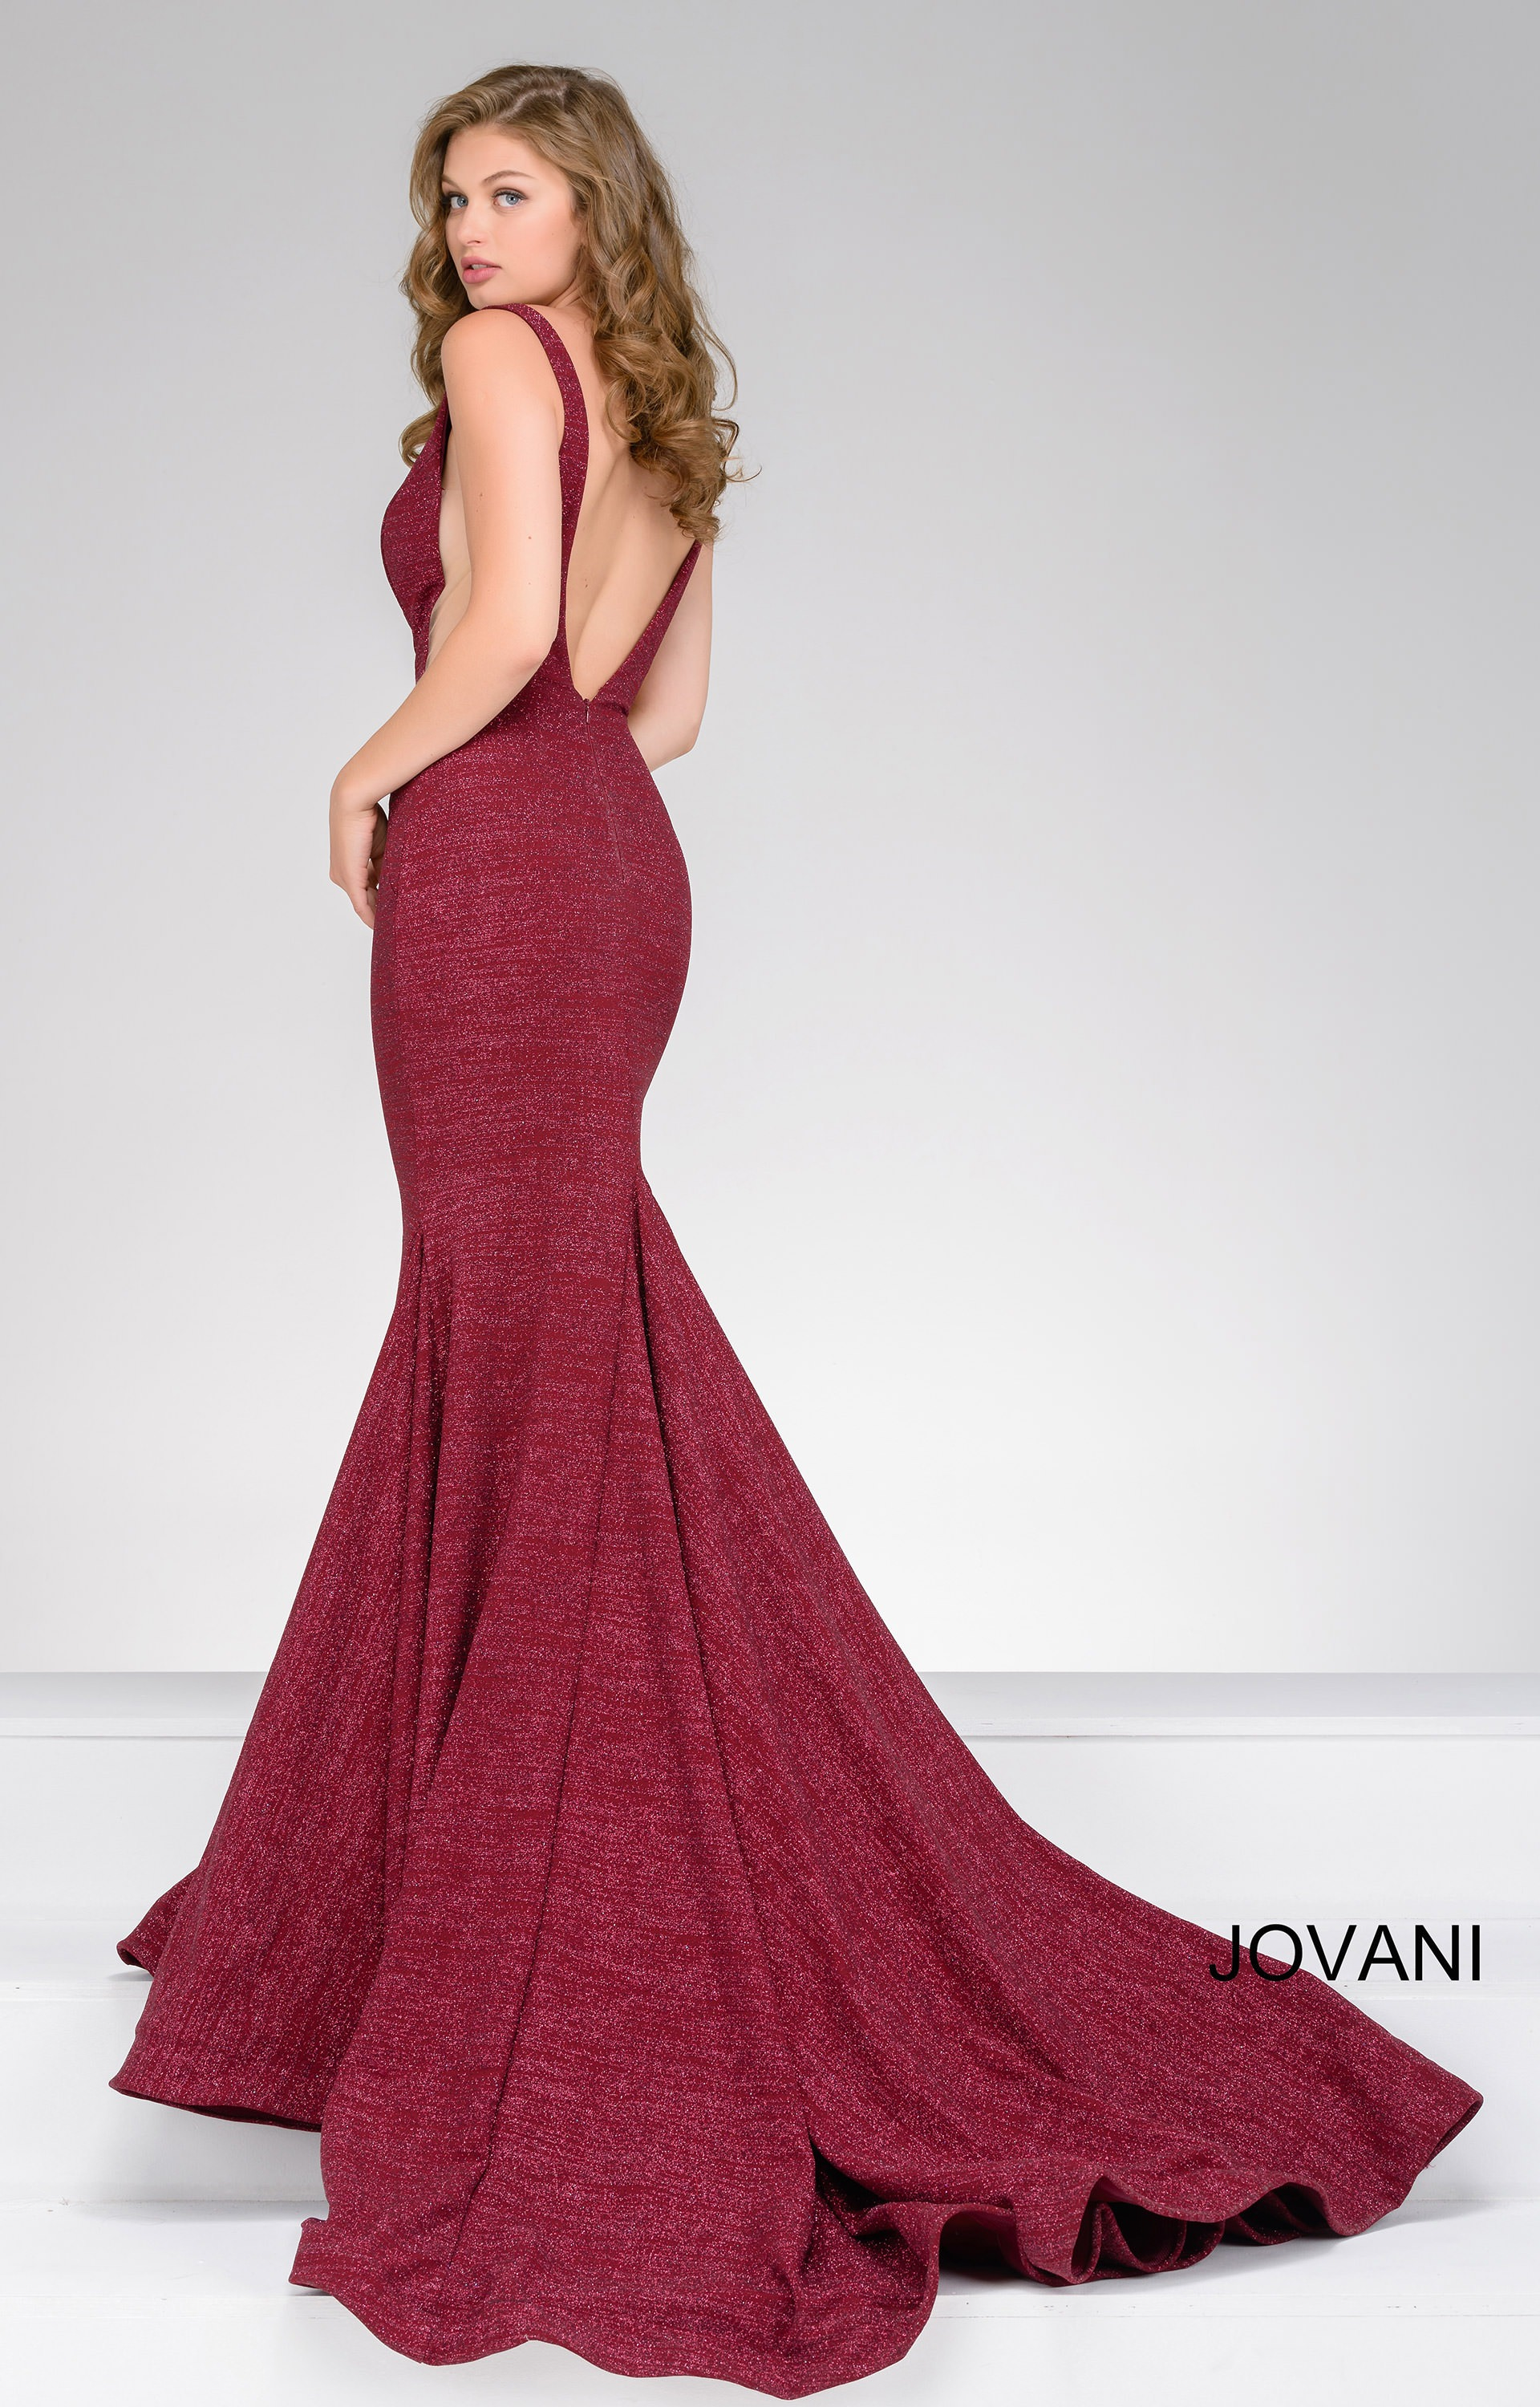 Jovani 47075 Deep V Neckline Simmer Fabric Side Cut Out